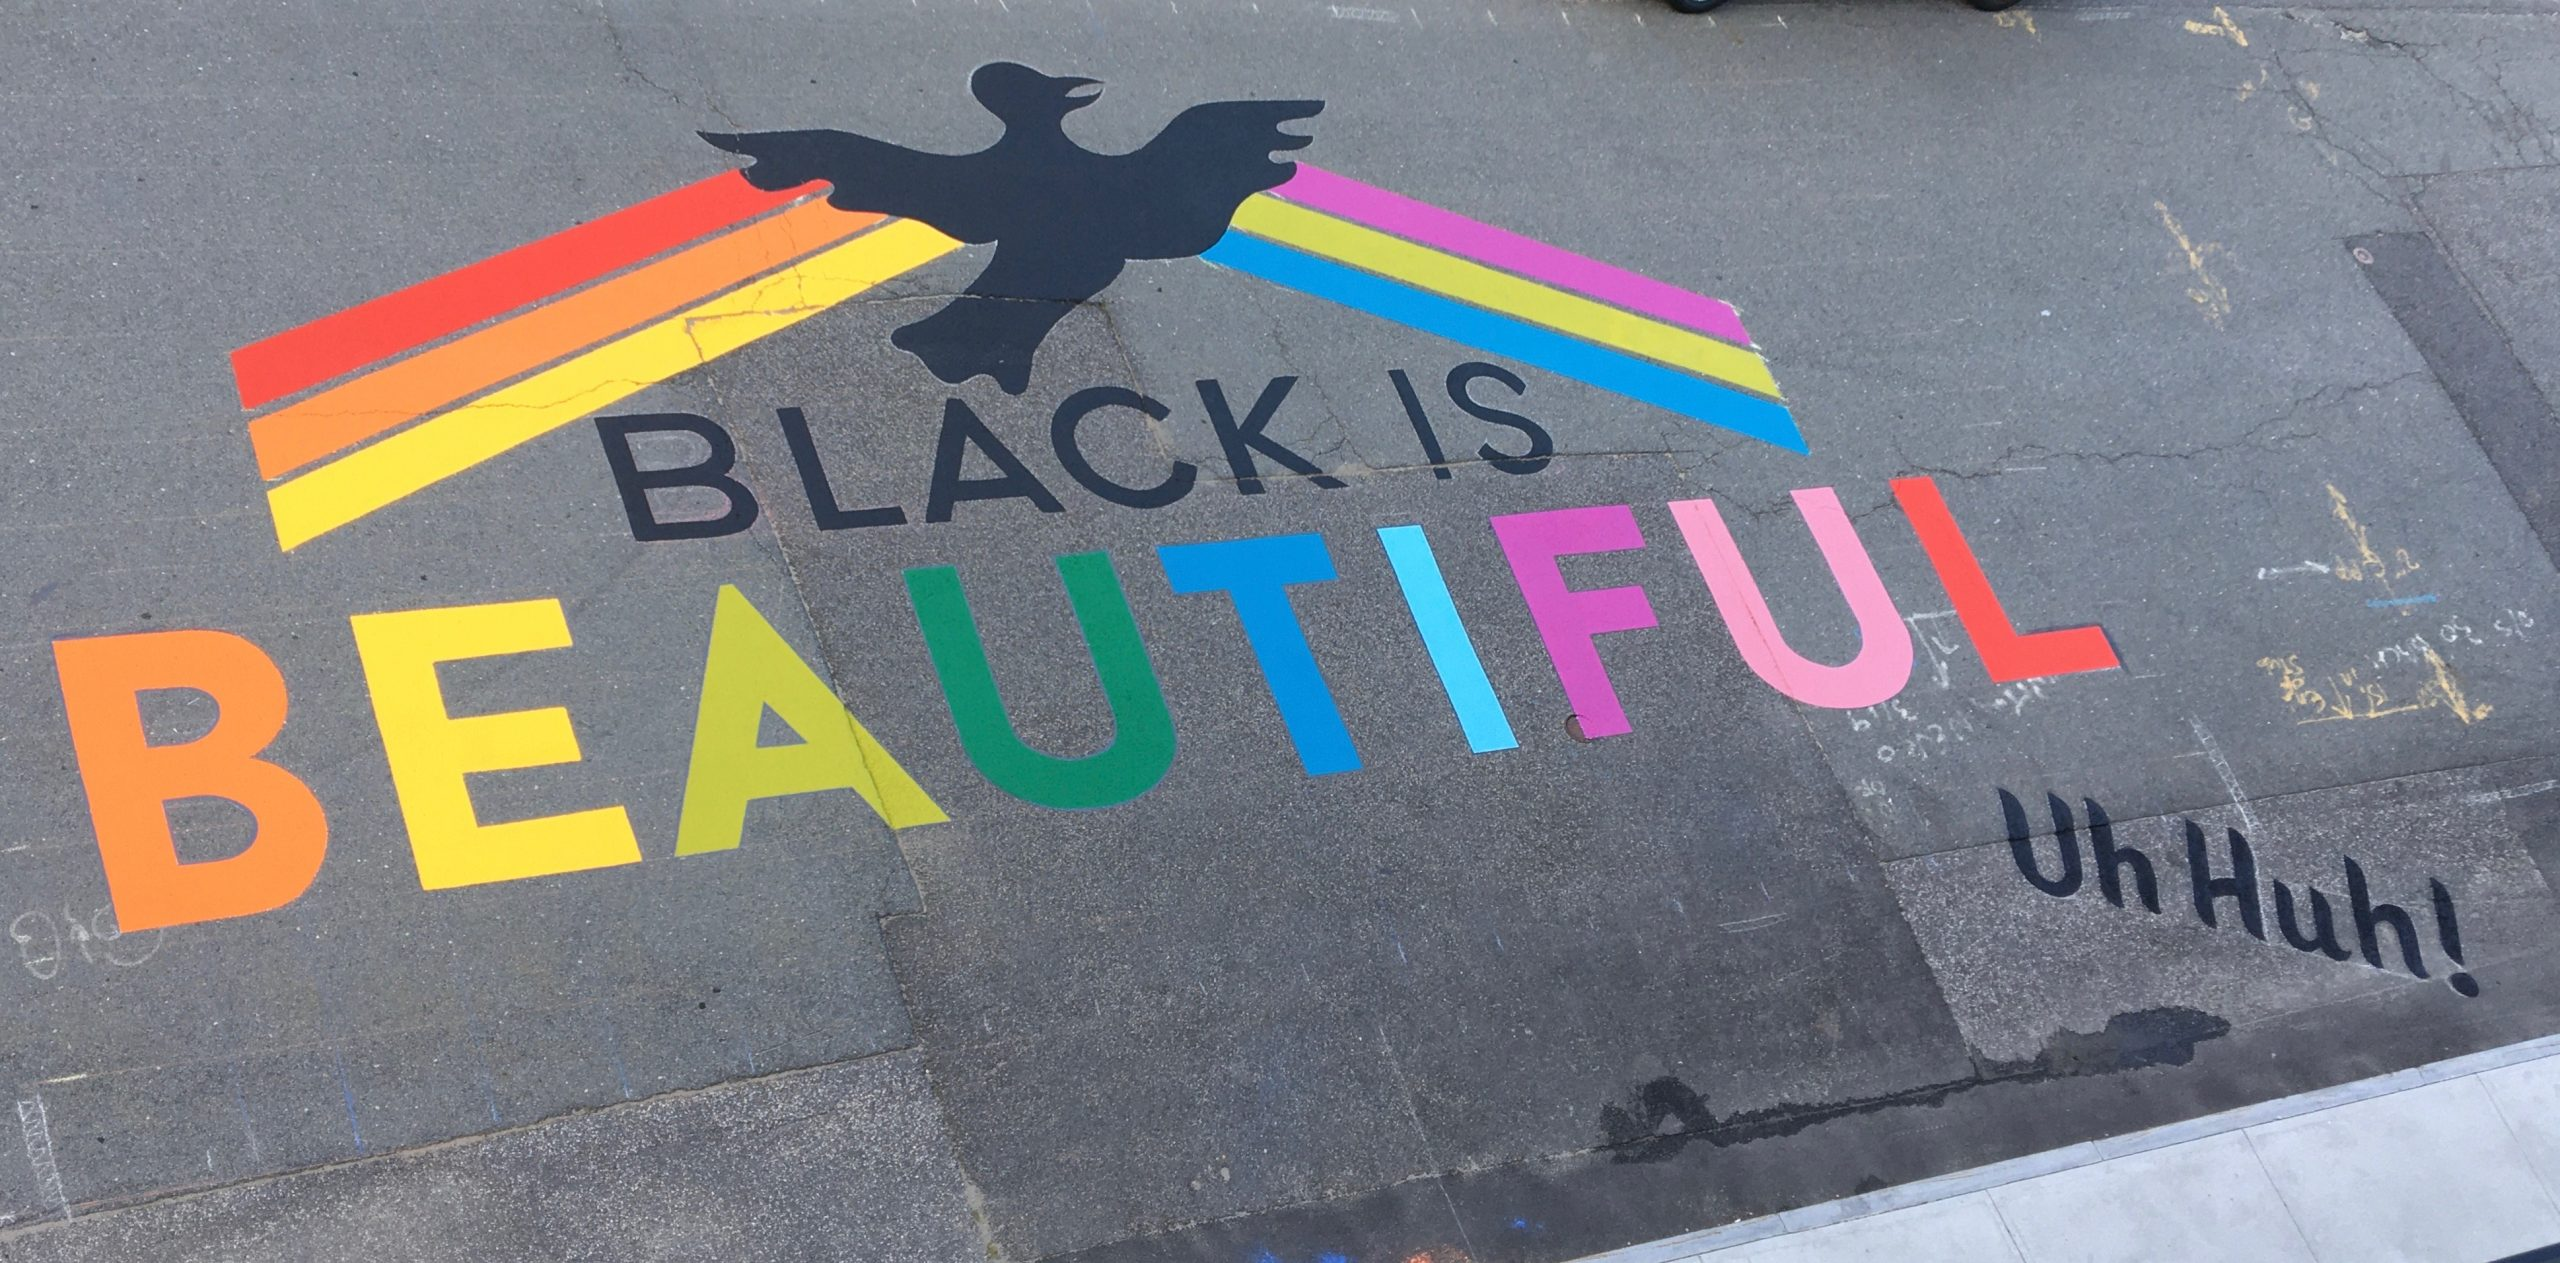 The Black is  Beautiful, Uh Huh! mural painted on the street